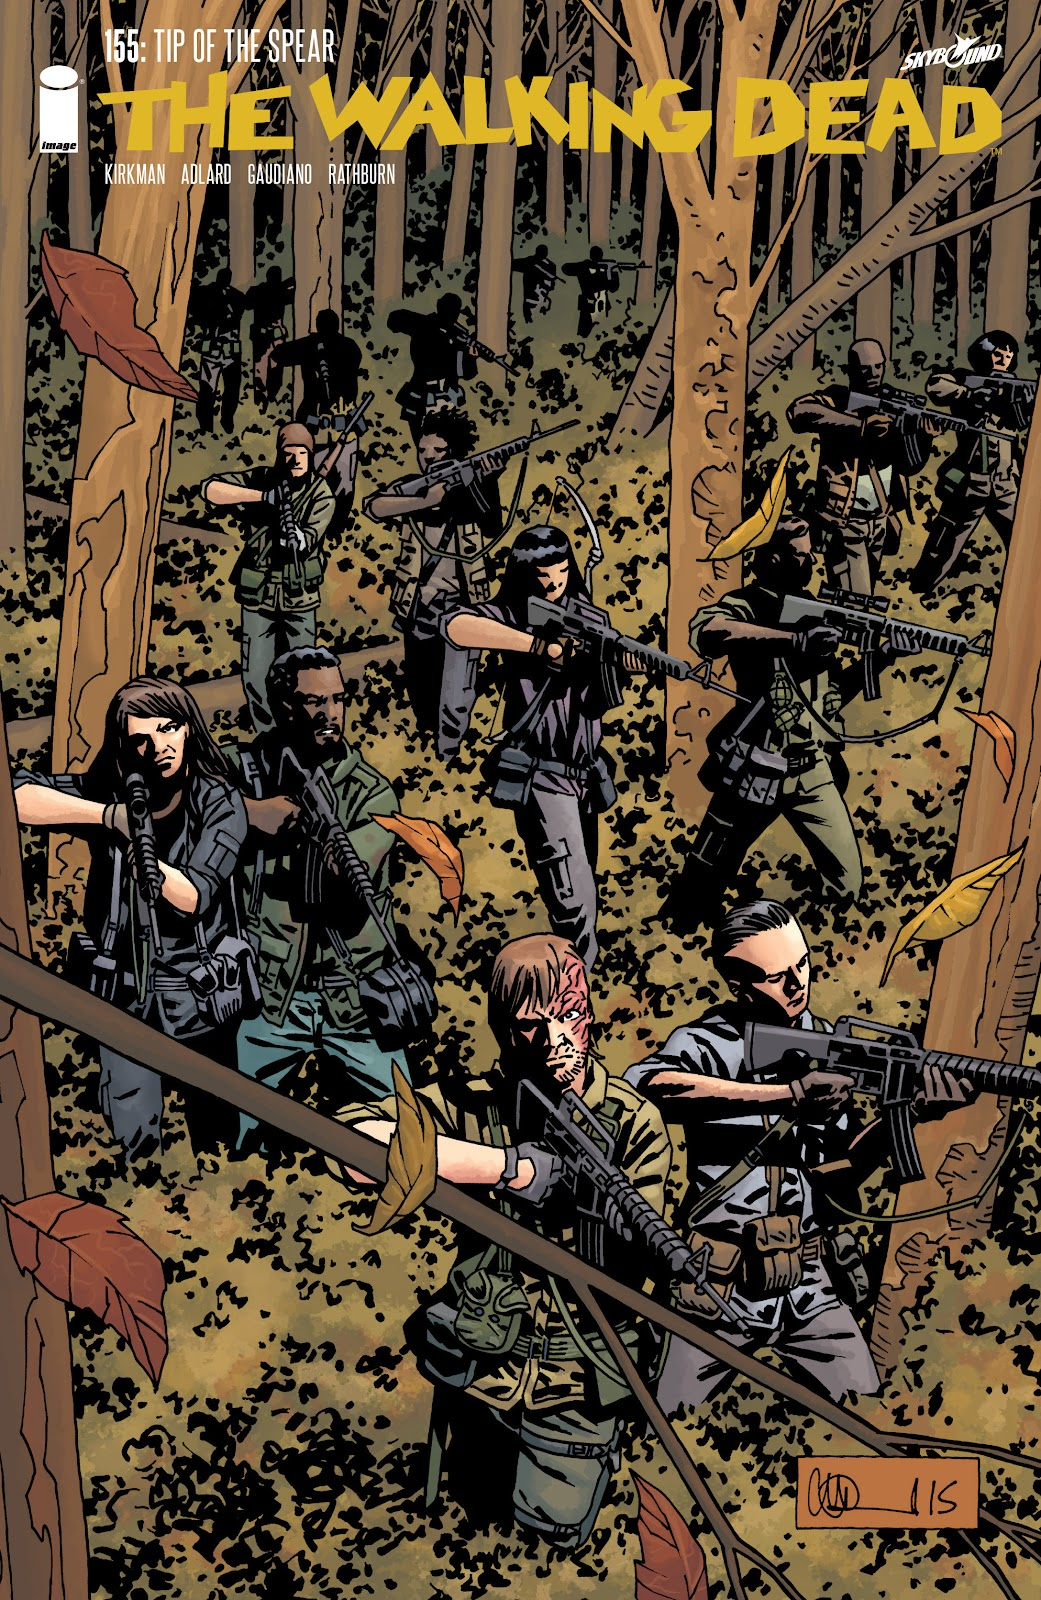 The Walking Dead 155 Page 1